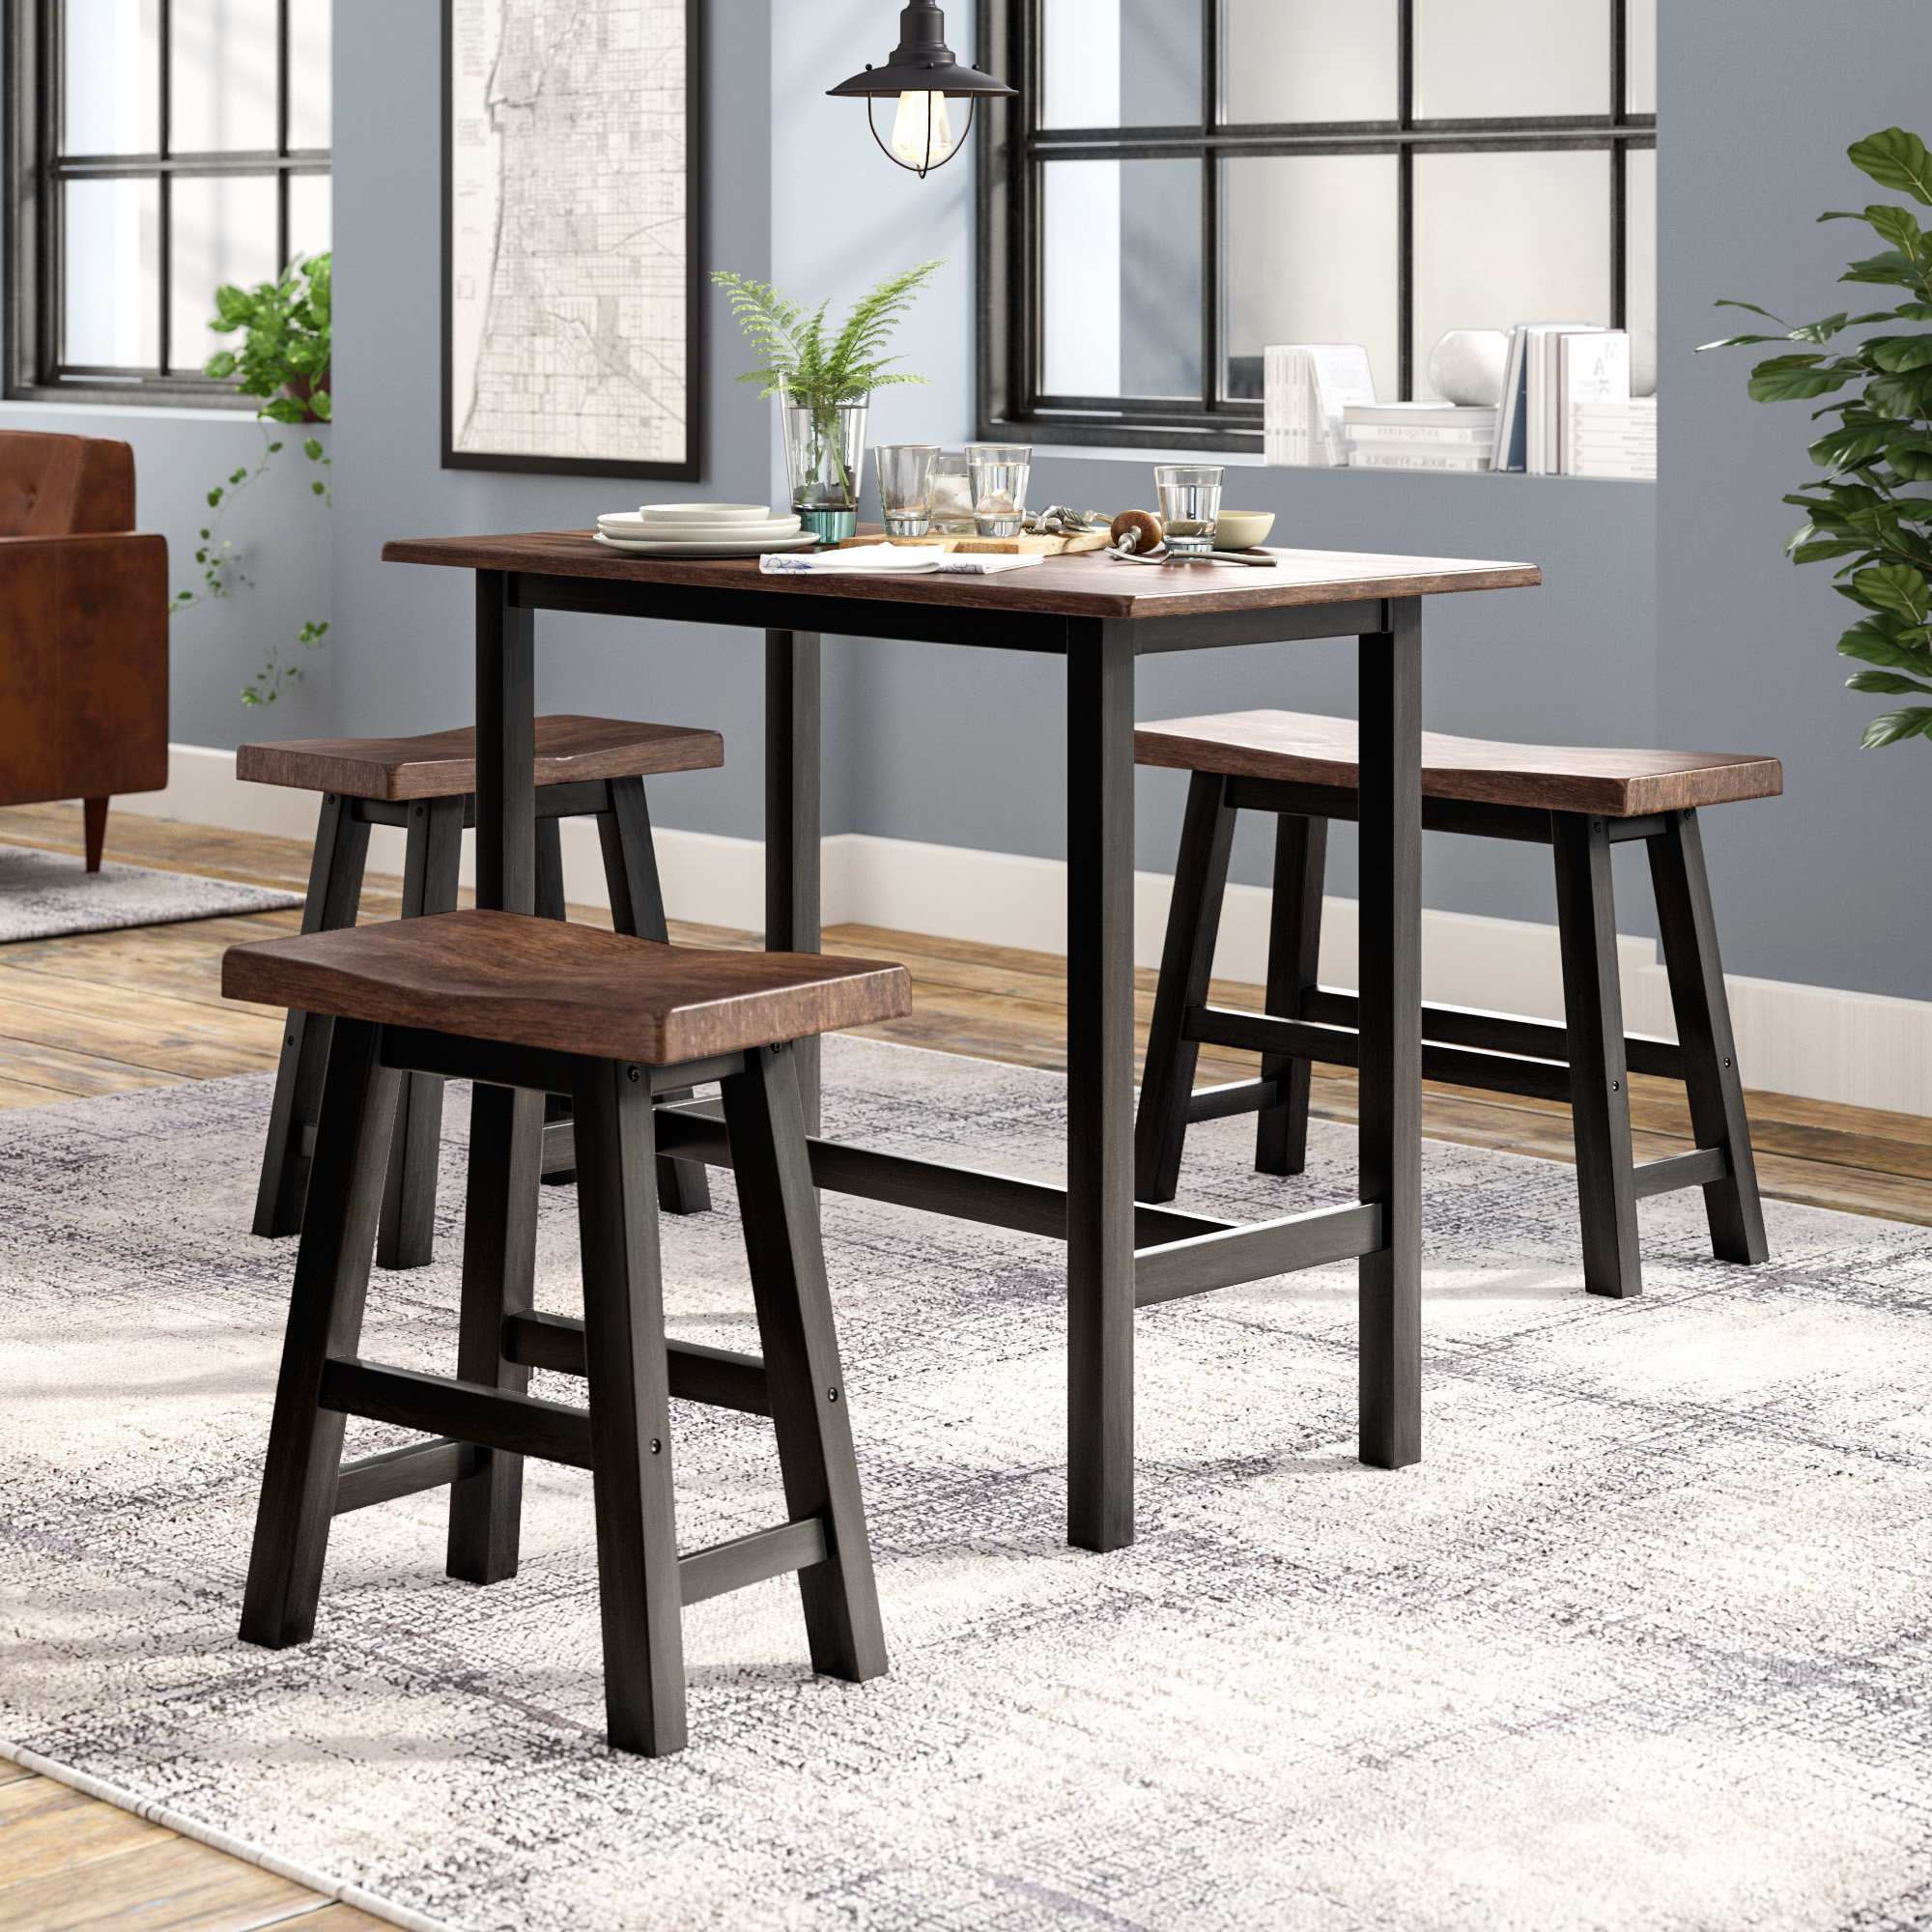 Winsted 4 Piece Counter Height Dining Sets For Favorite Chelsey 4 Piece Dining Set (View 8 of 20)